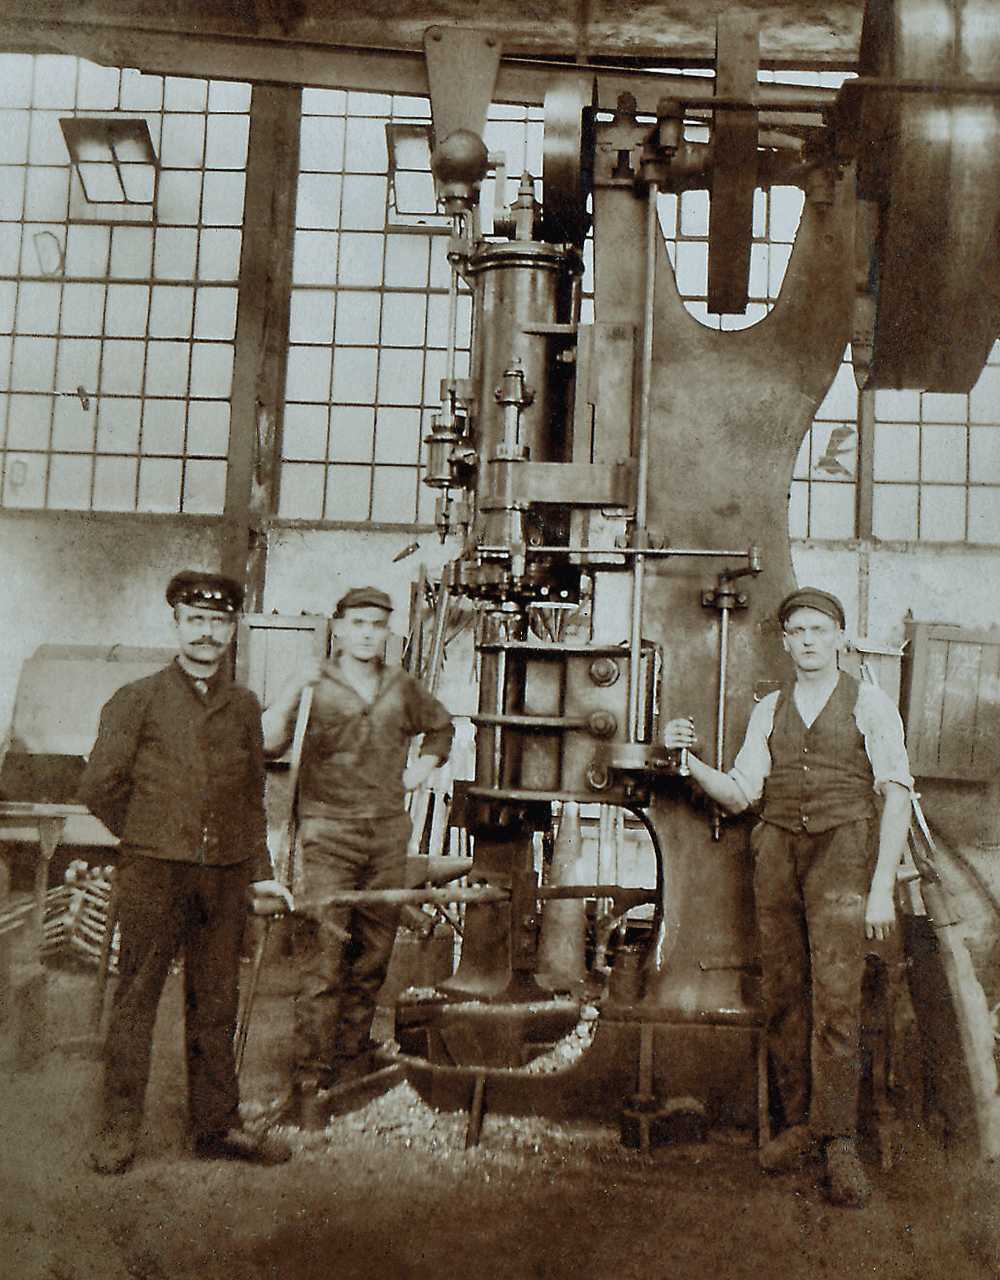 Old picture of three AERZEN employees in front of an AERZEN unit